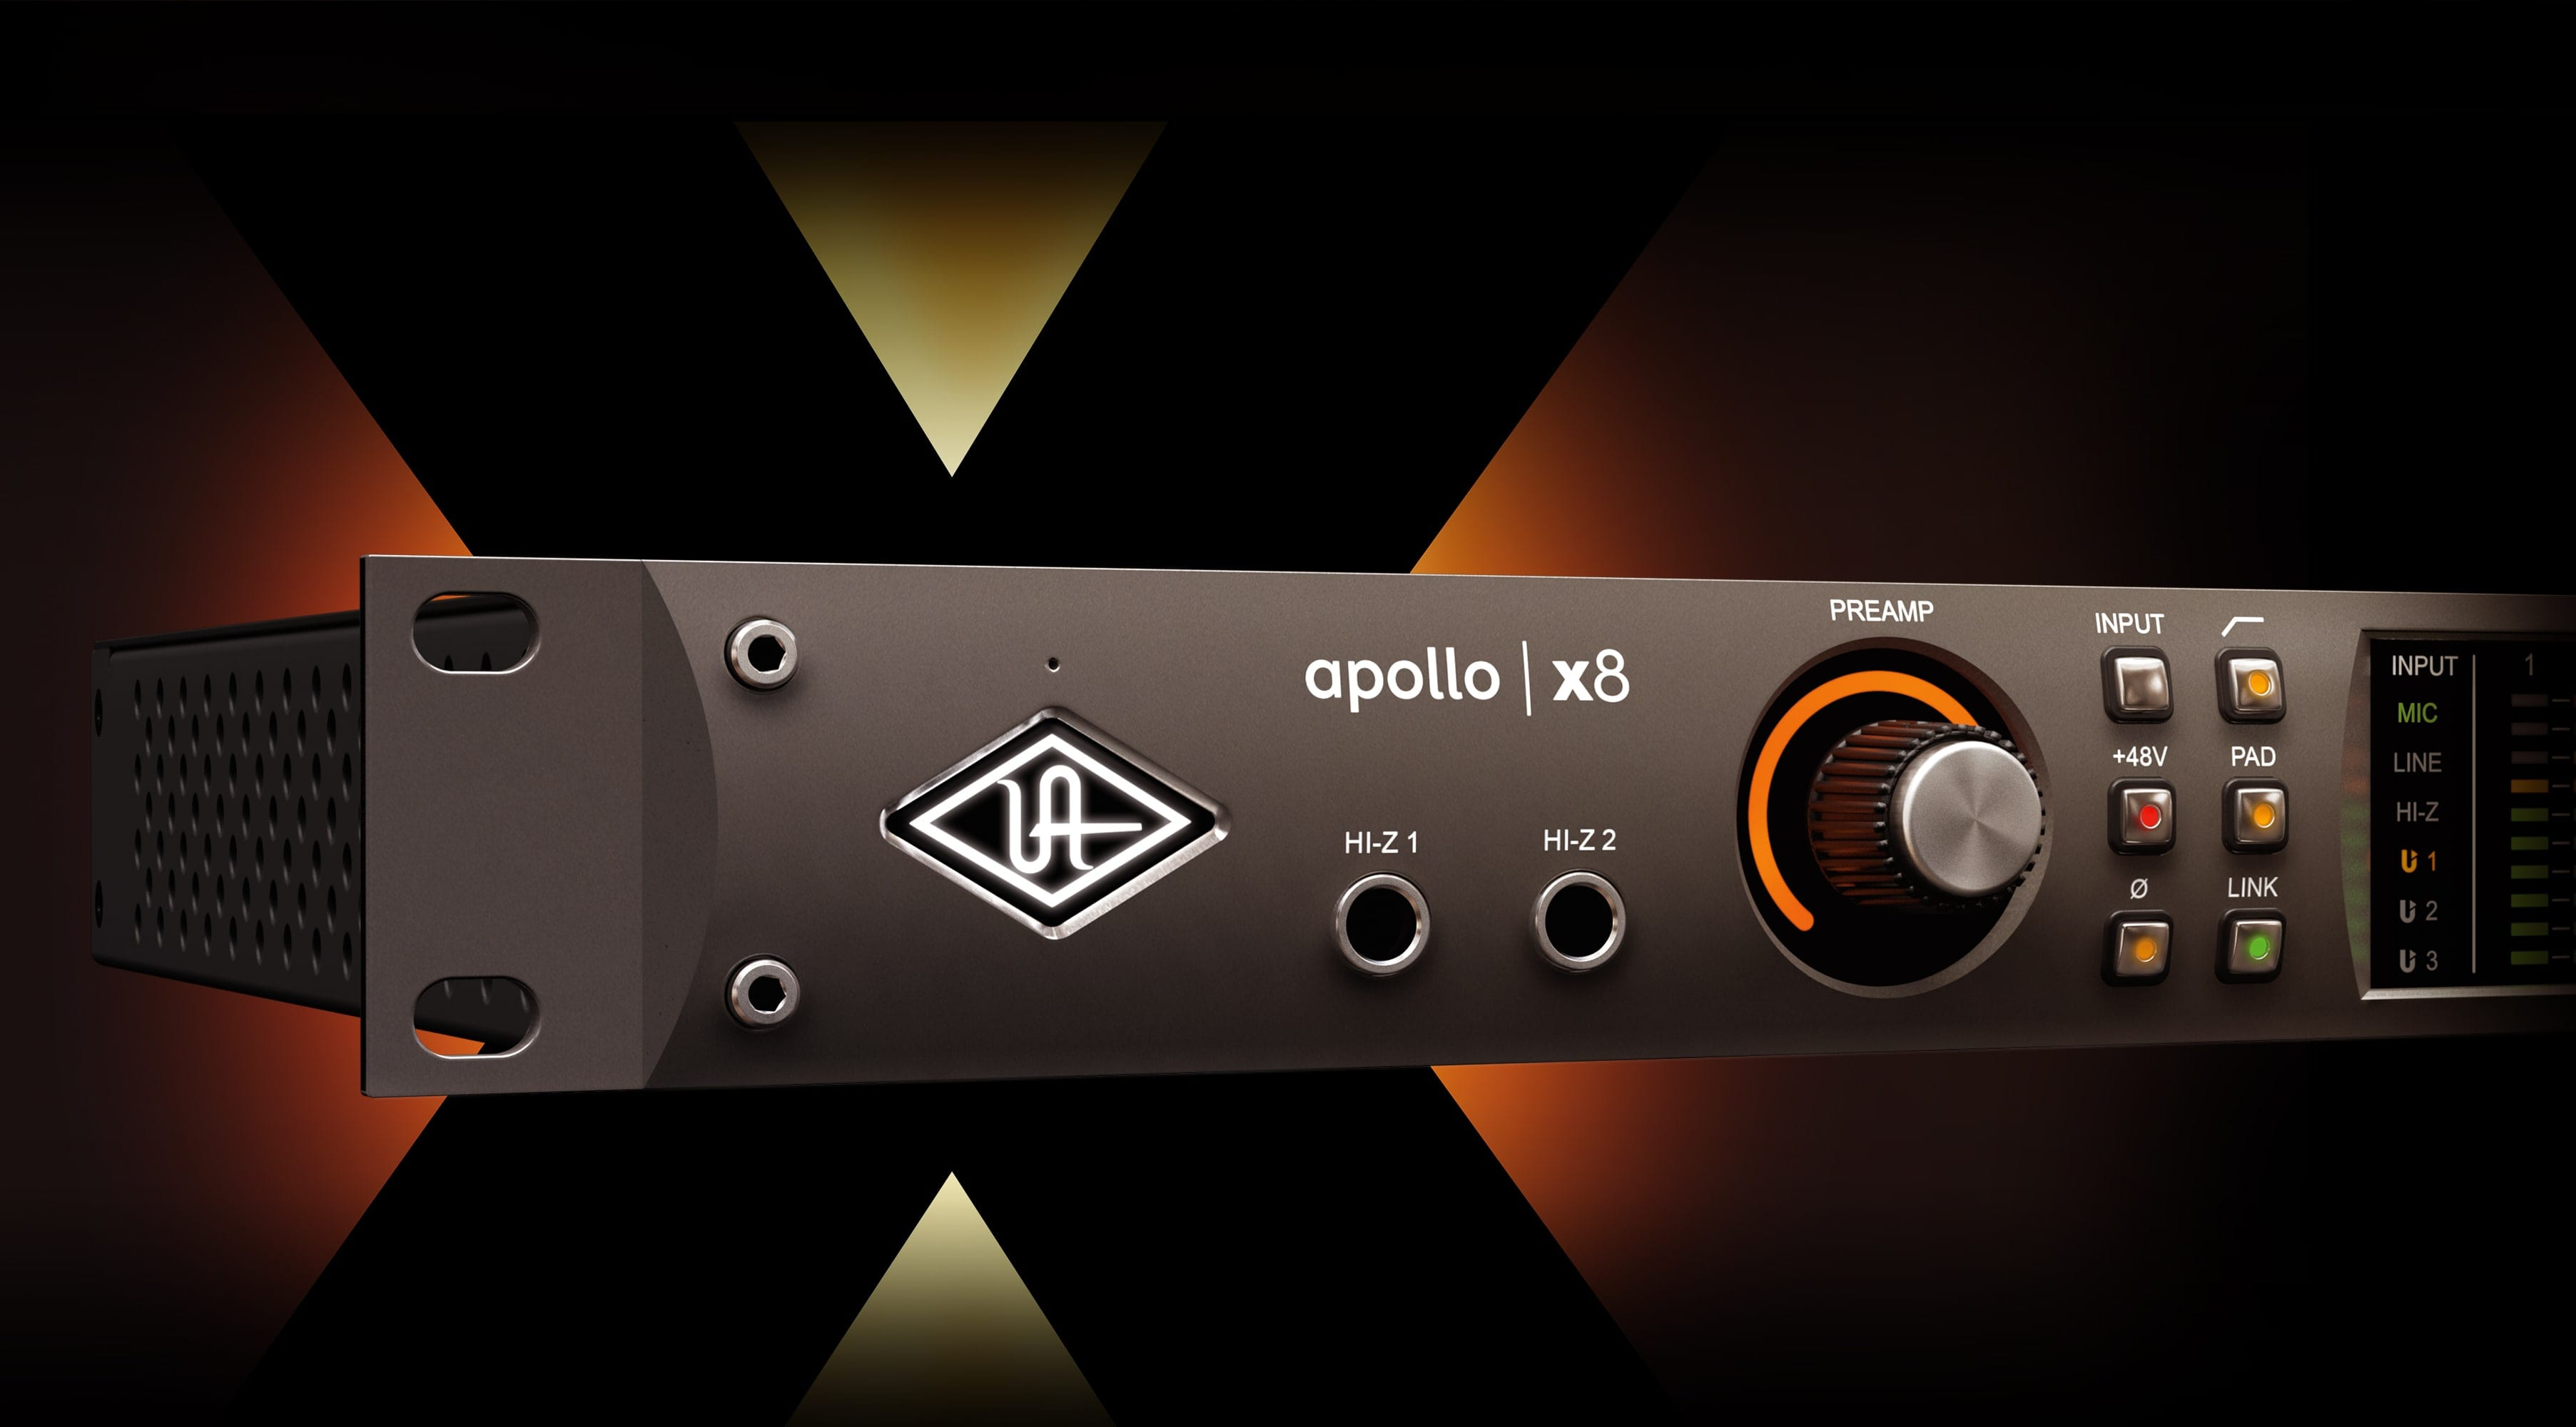 Apollo Studio New Gear Review Apollo X8 And X Series Interfaces From Universal